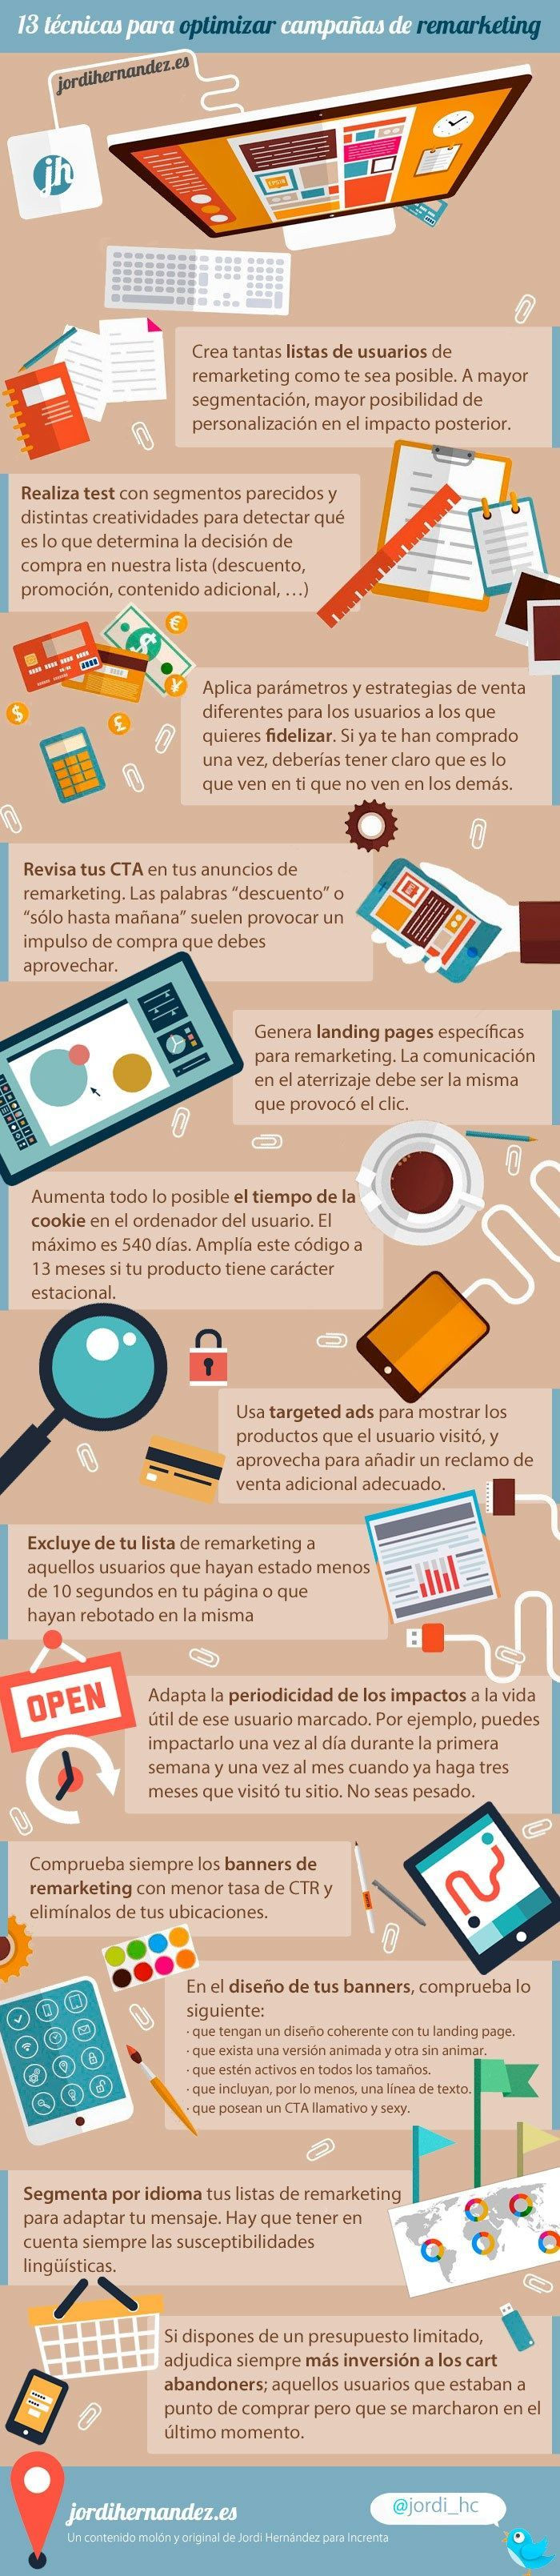 13 Técnicas Para Optimizar Campañas De Remarketing Infografia Infographic Marketing Tics Y Formación Marketing Infografia Marketing De Afiliación